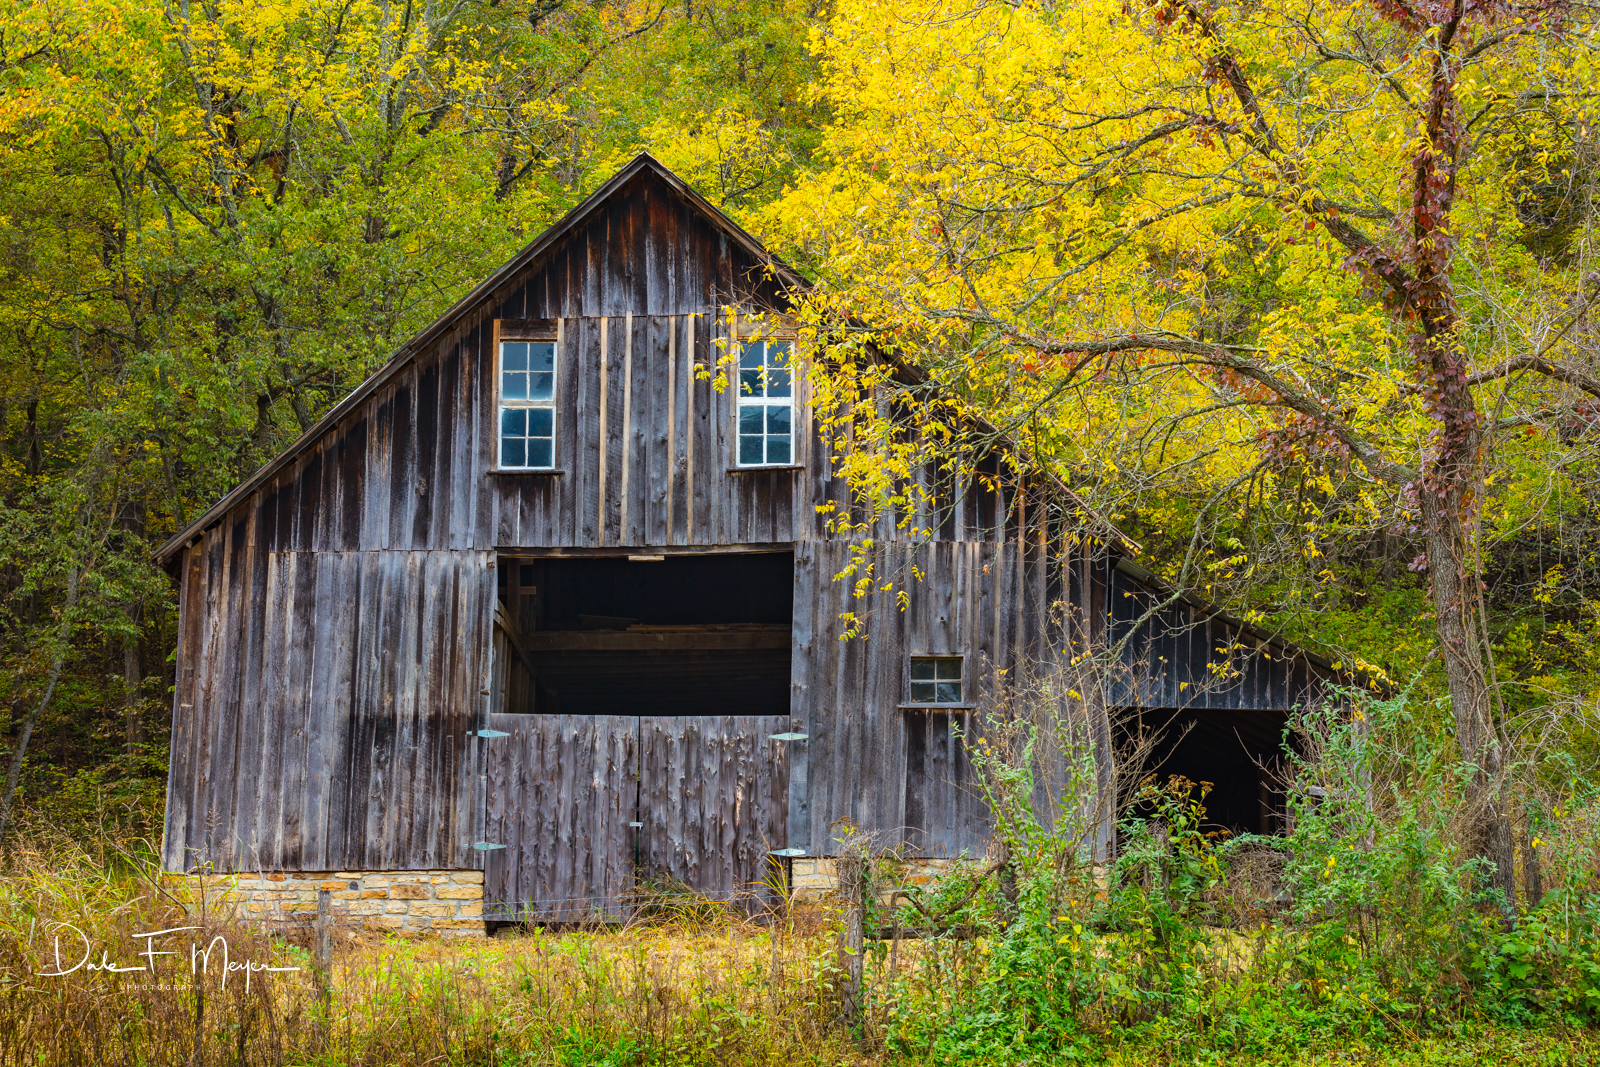 barn, Fall 2018, Ponca Valley Arkansas, time gone by gallery, photo